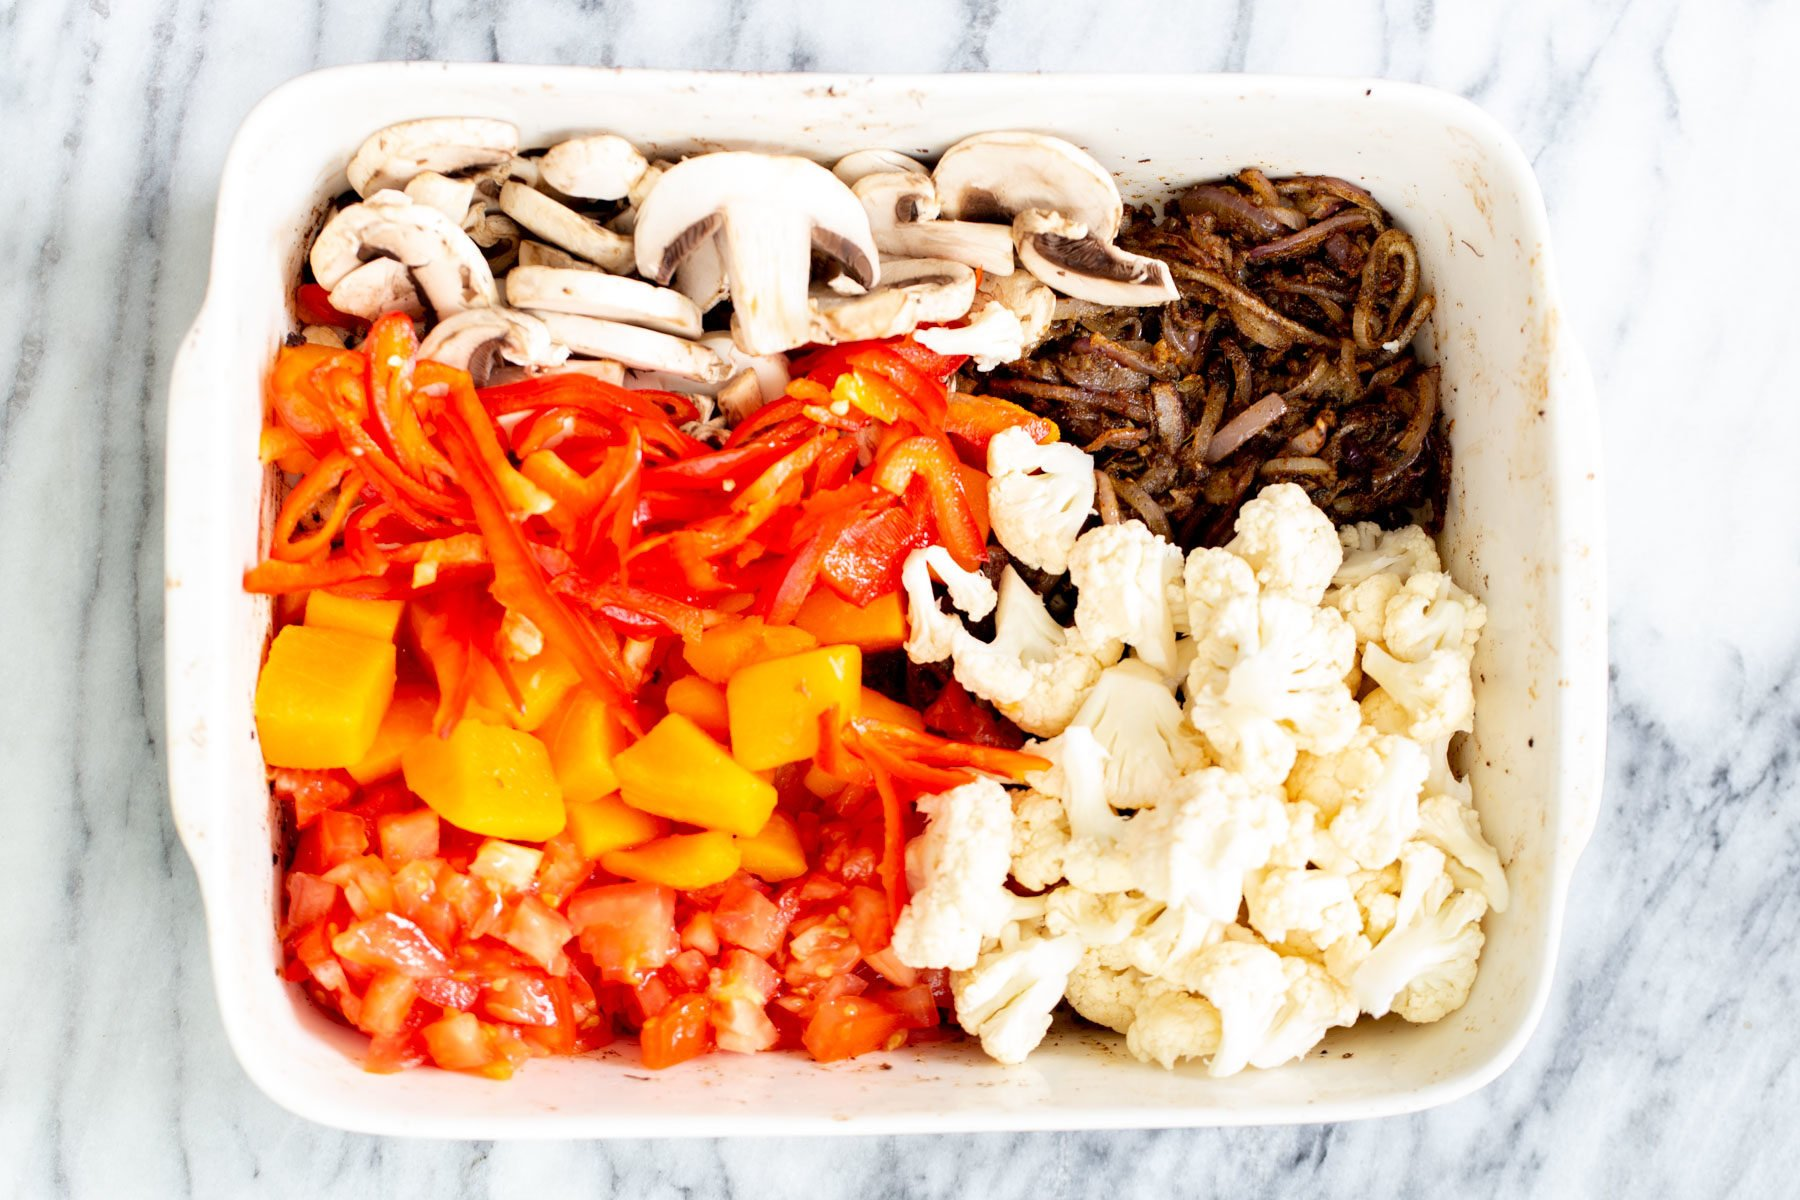 healthy vegetables assembled in a casserole dish to make balti vegetables